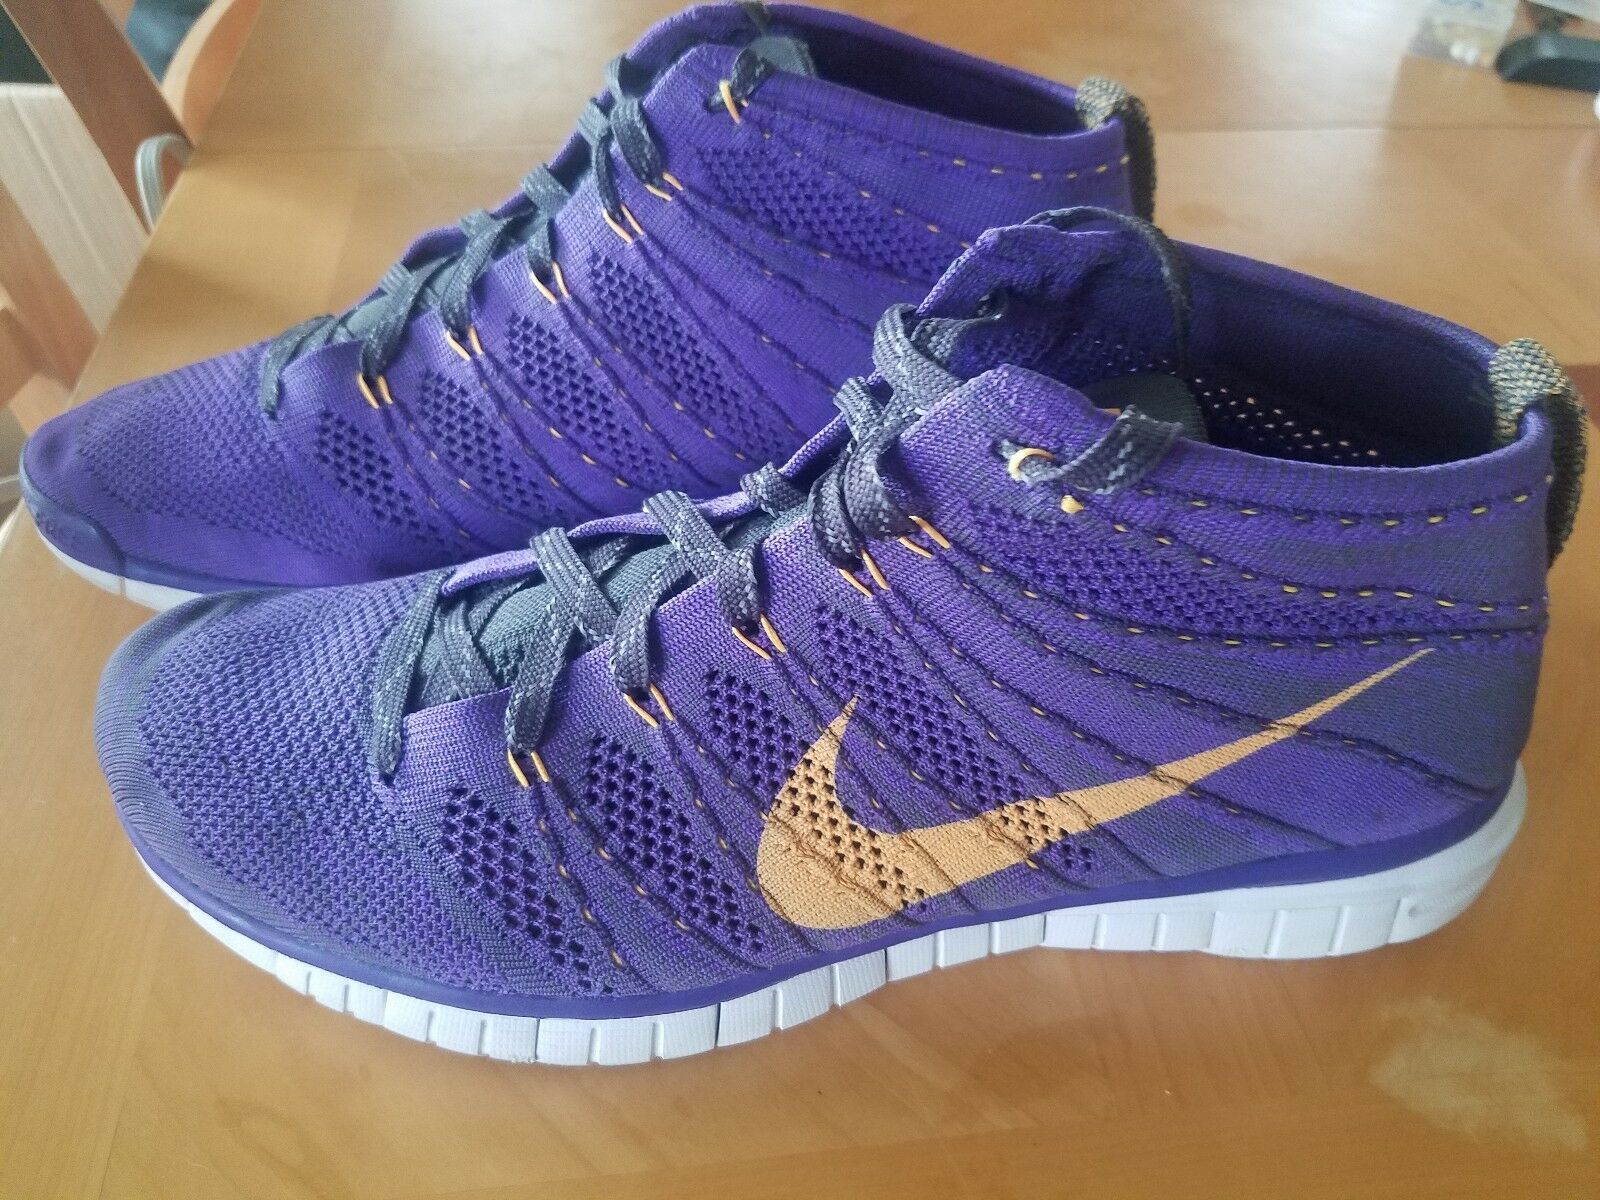 AWESOME NIKE FREE FLYKNIT TRAINER CHUKKA 639700-500 PURPLE RUNNING SHOES SZ 11